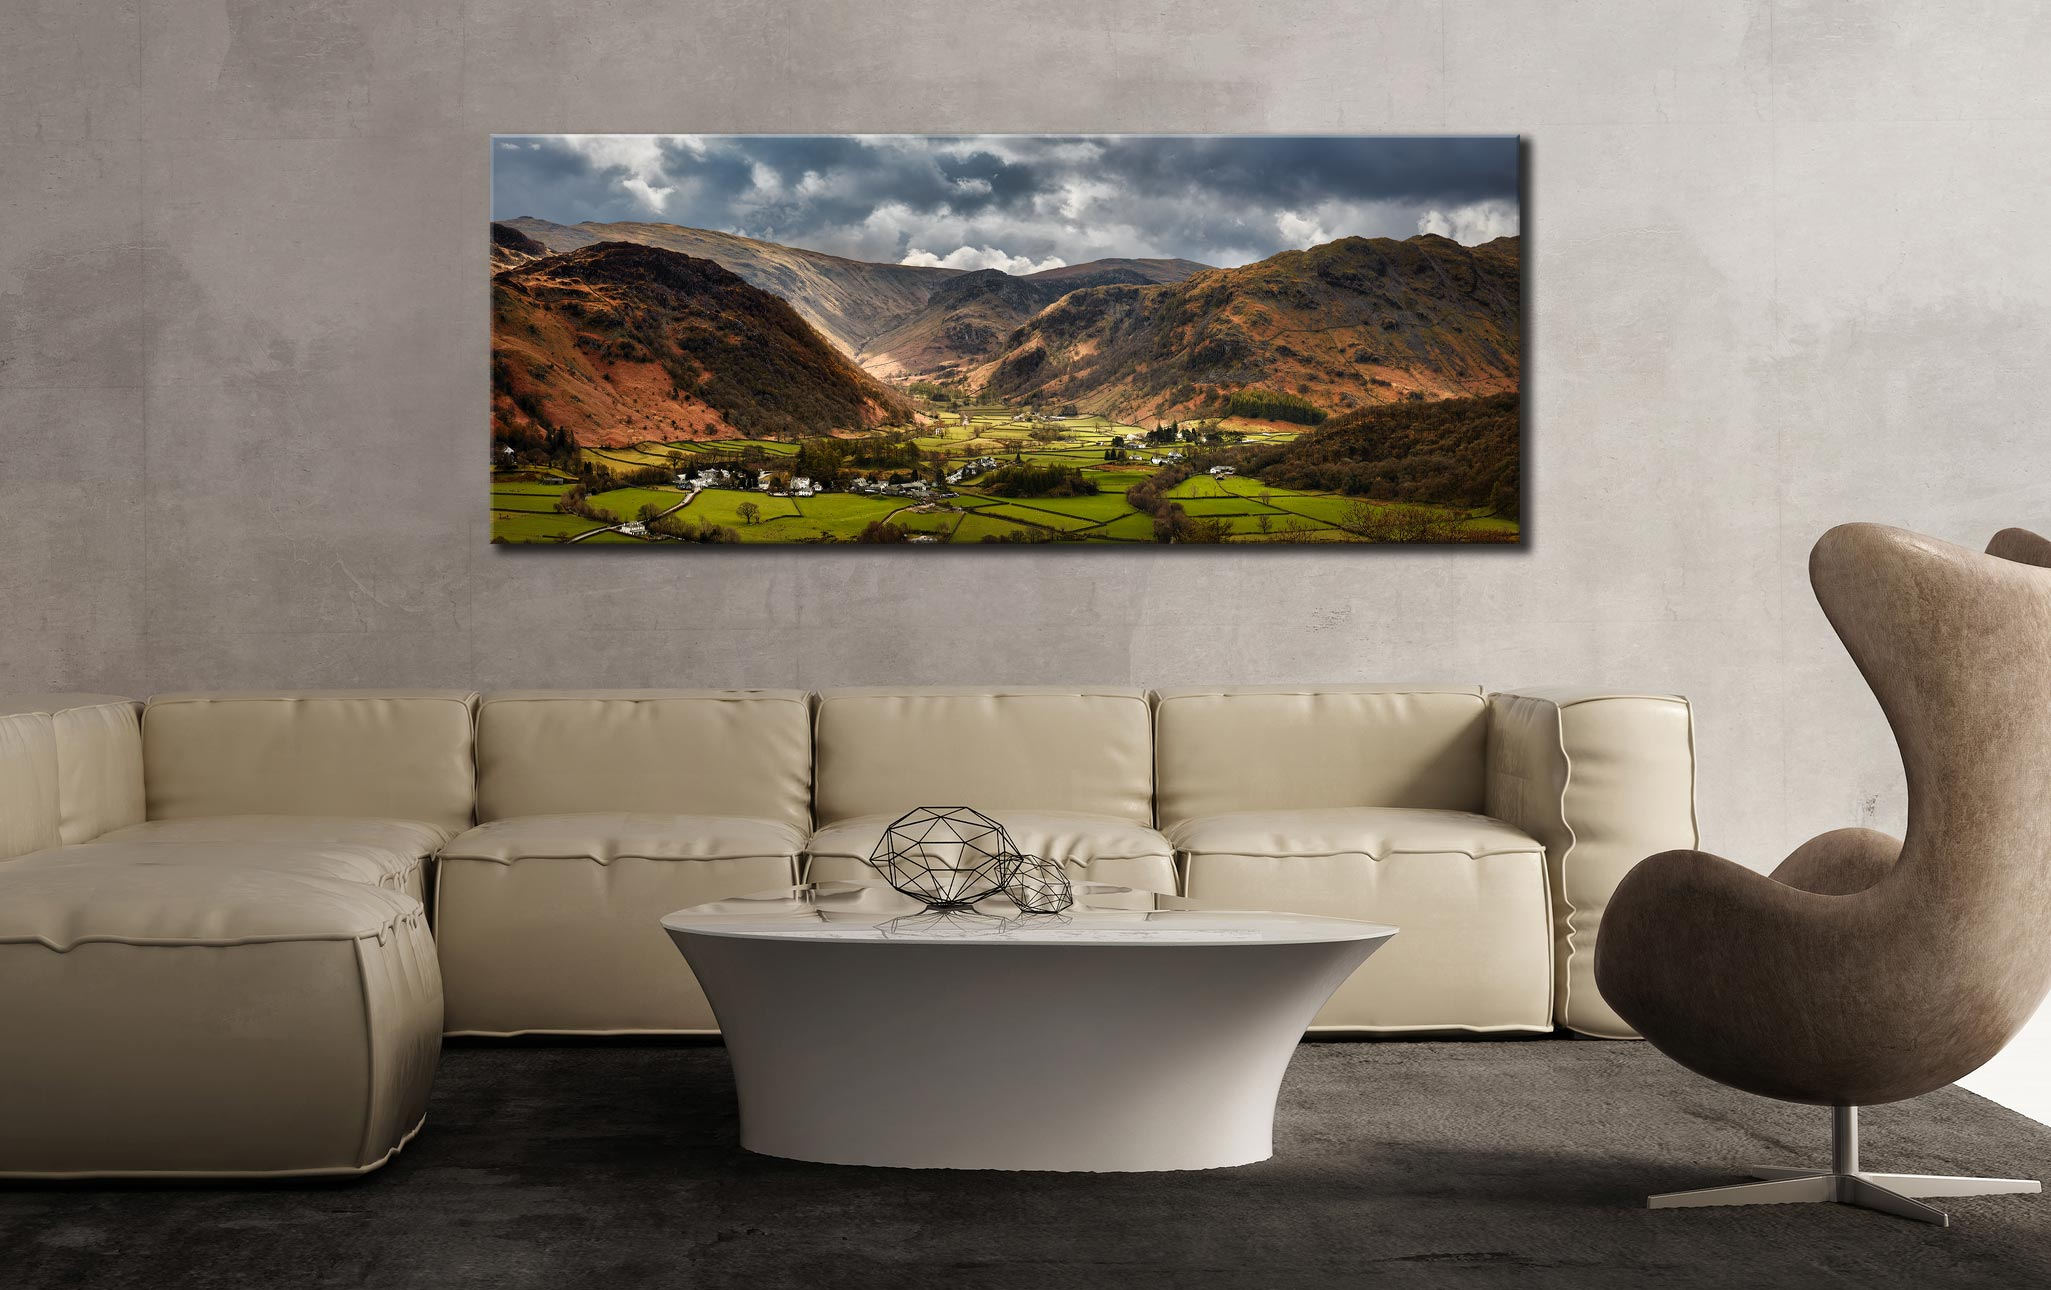 Borrowdale Pastures - Canvas Print on Wall